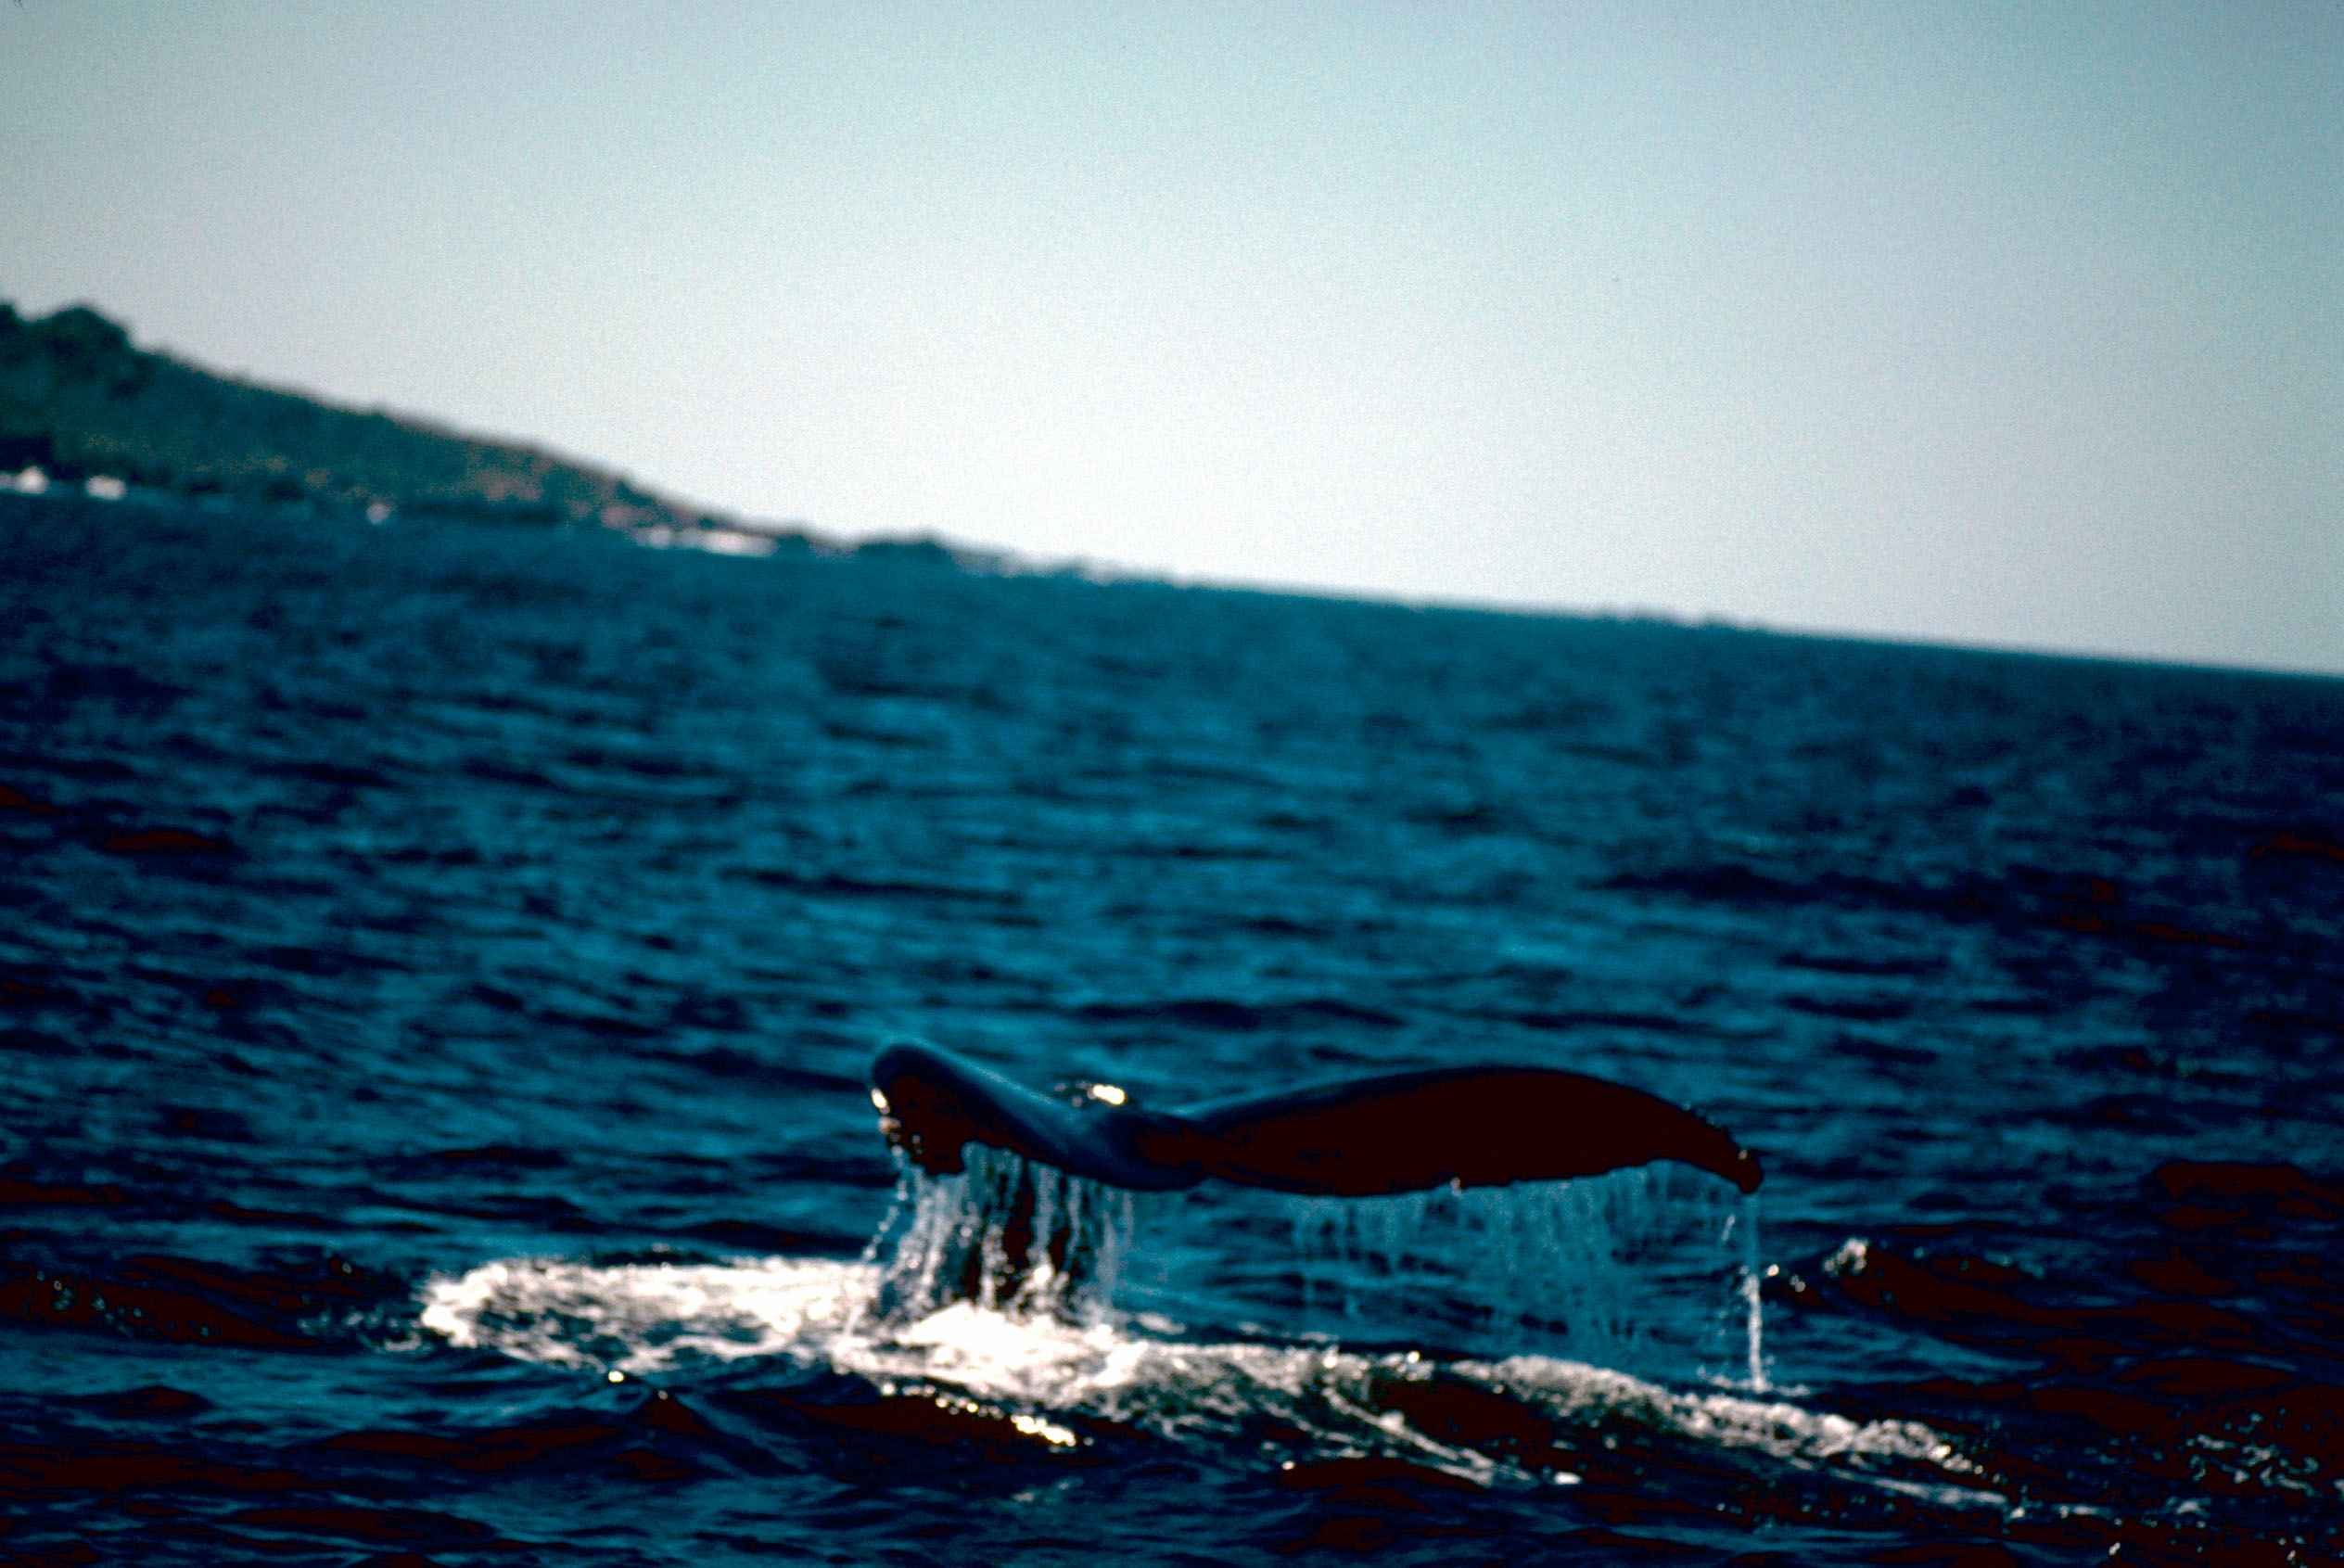 Oceans Whales File:humpback Whale in Ocean